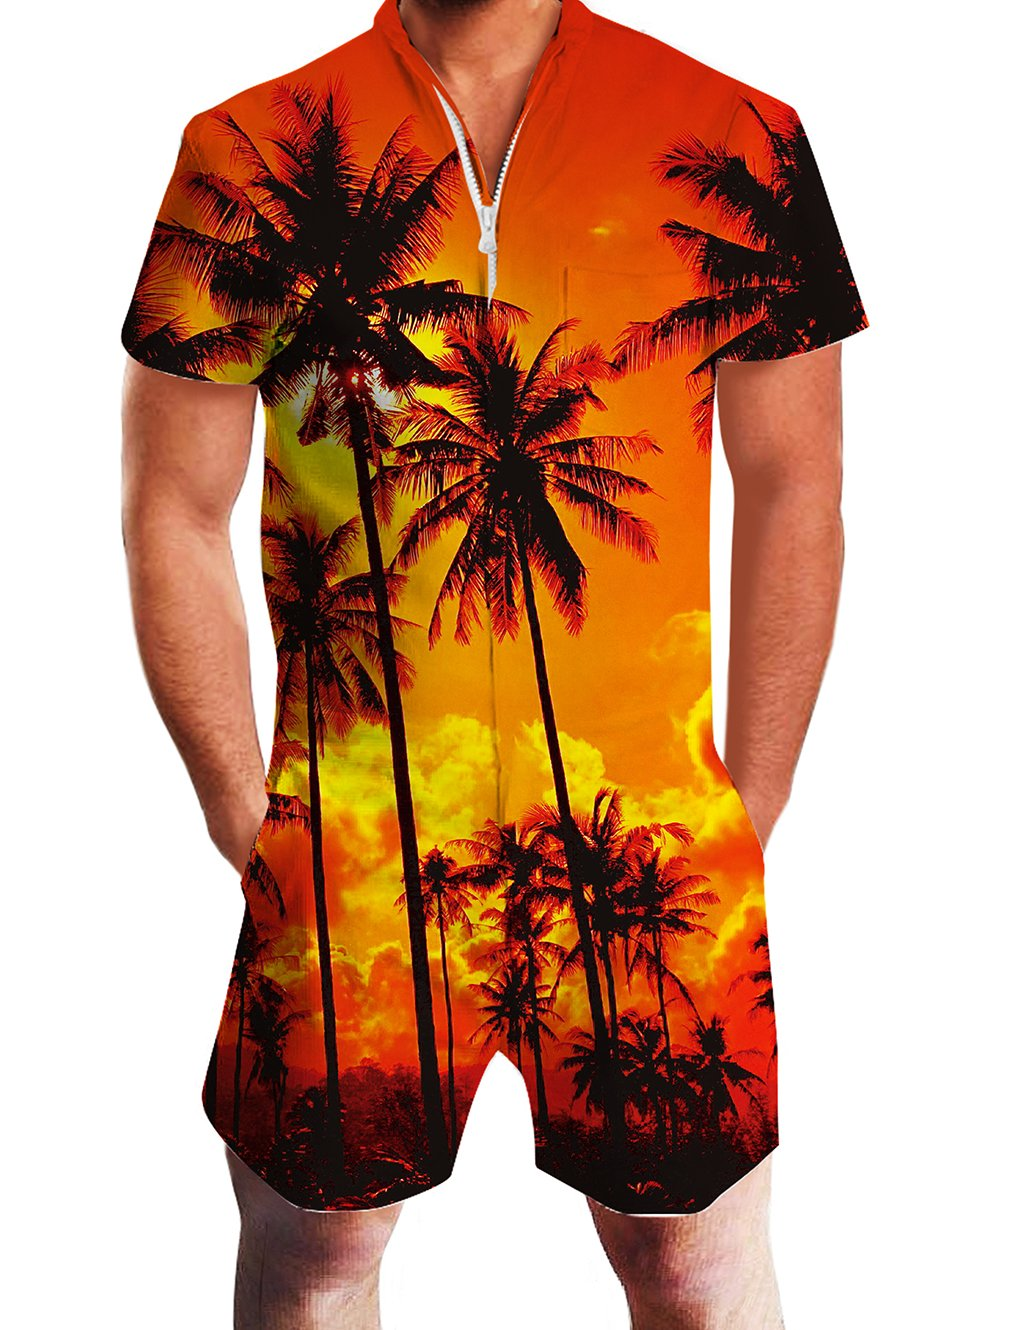 4dee55c01a7a Galleon - Leapparel Mens Coconut Tree Graphic Rompers Funny 3D Cartoon  Jumpsuits 90s Personalized Clothes Overalls Shorts Cool Pants M